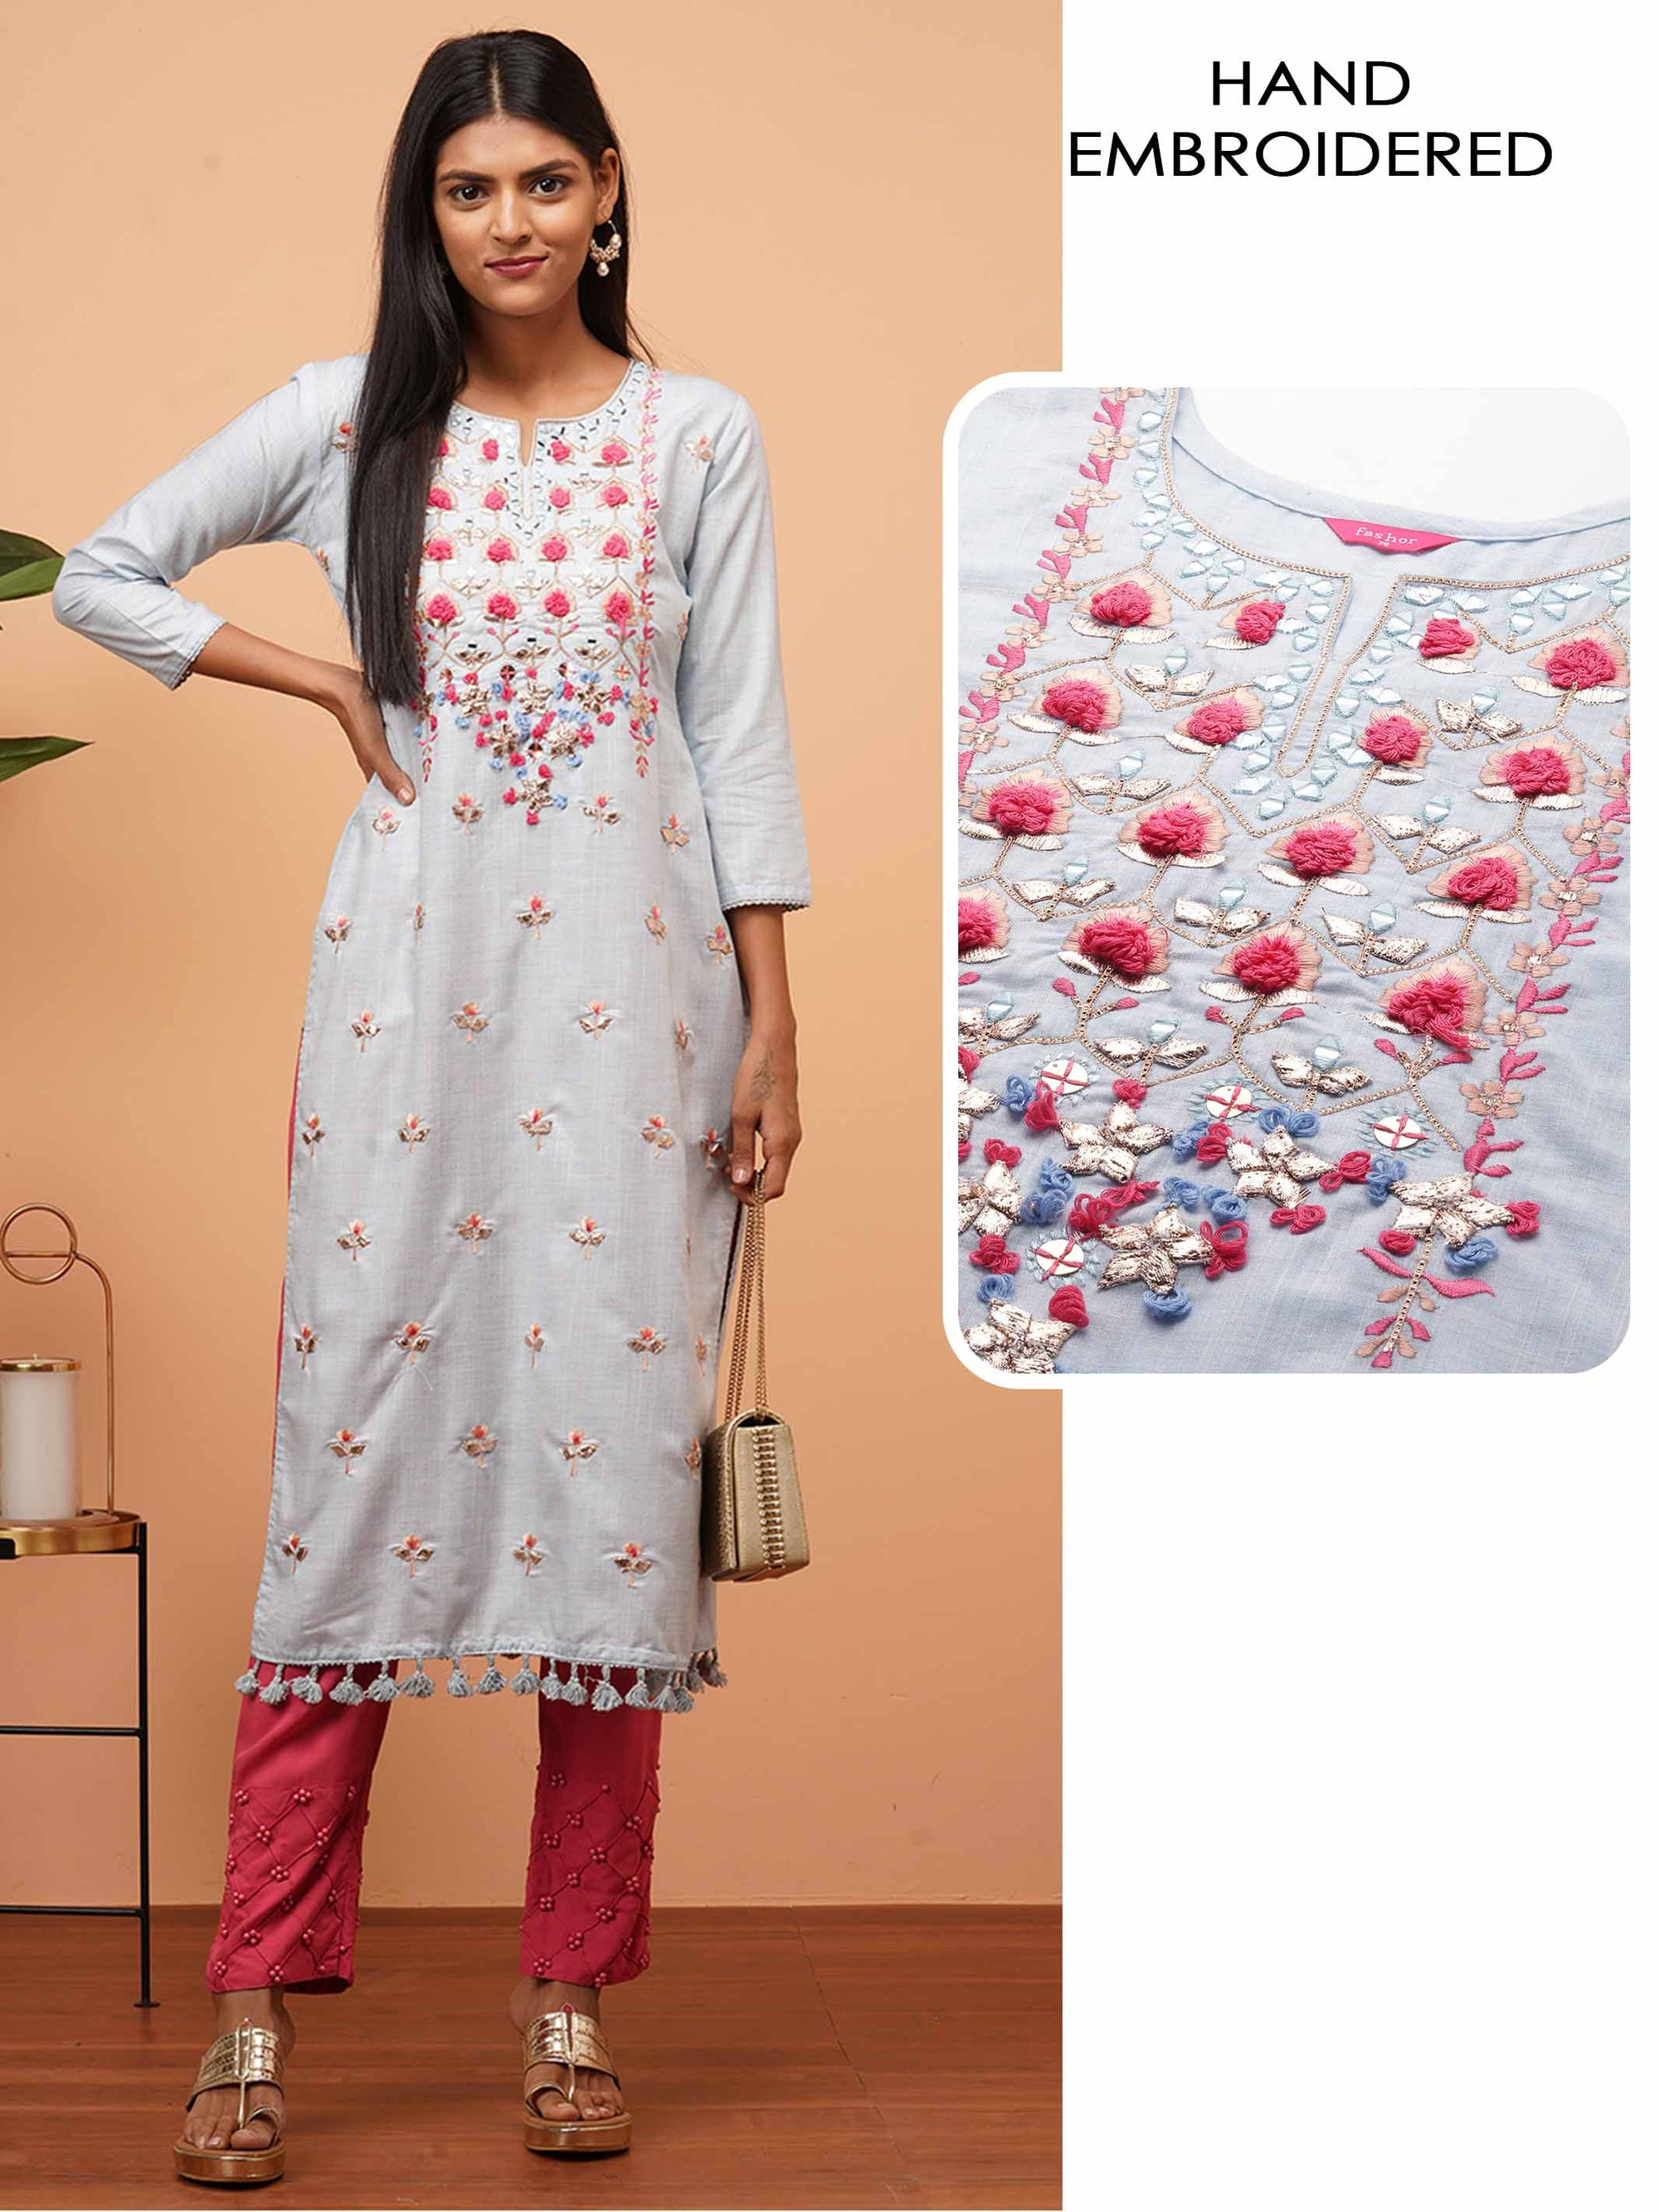 Floral & Mirror Hand Embroidered Yoke Straight Kurta - Powder Blue